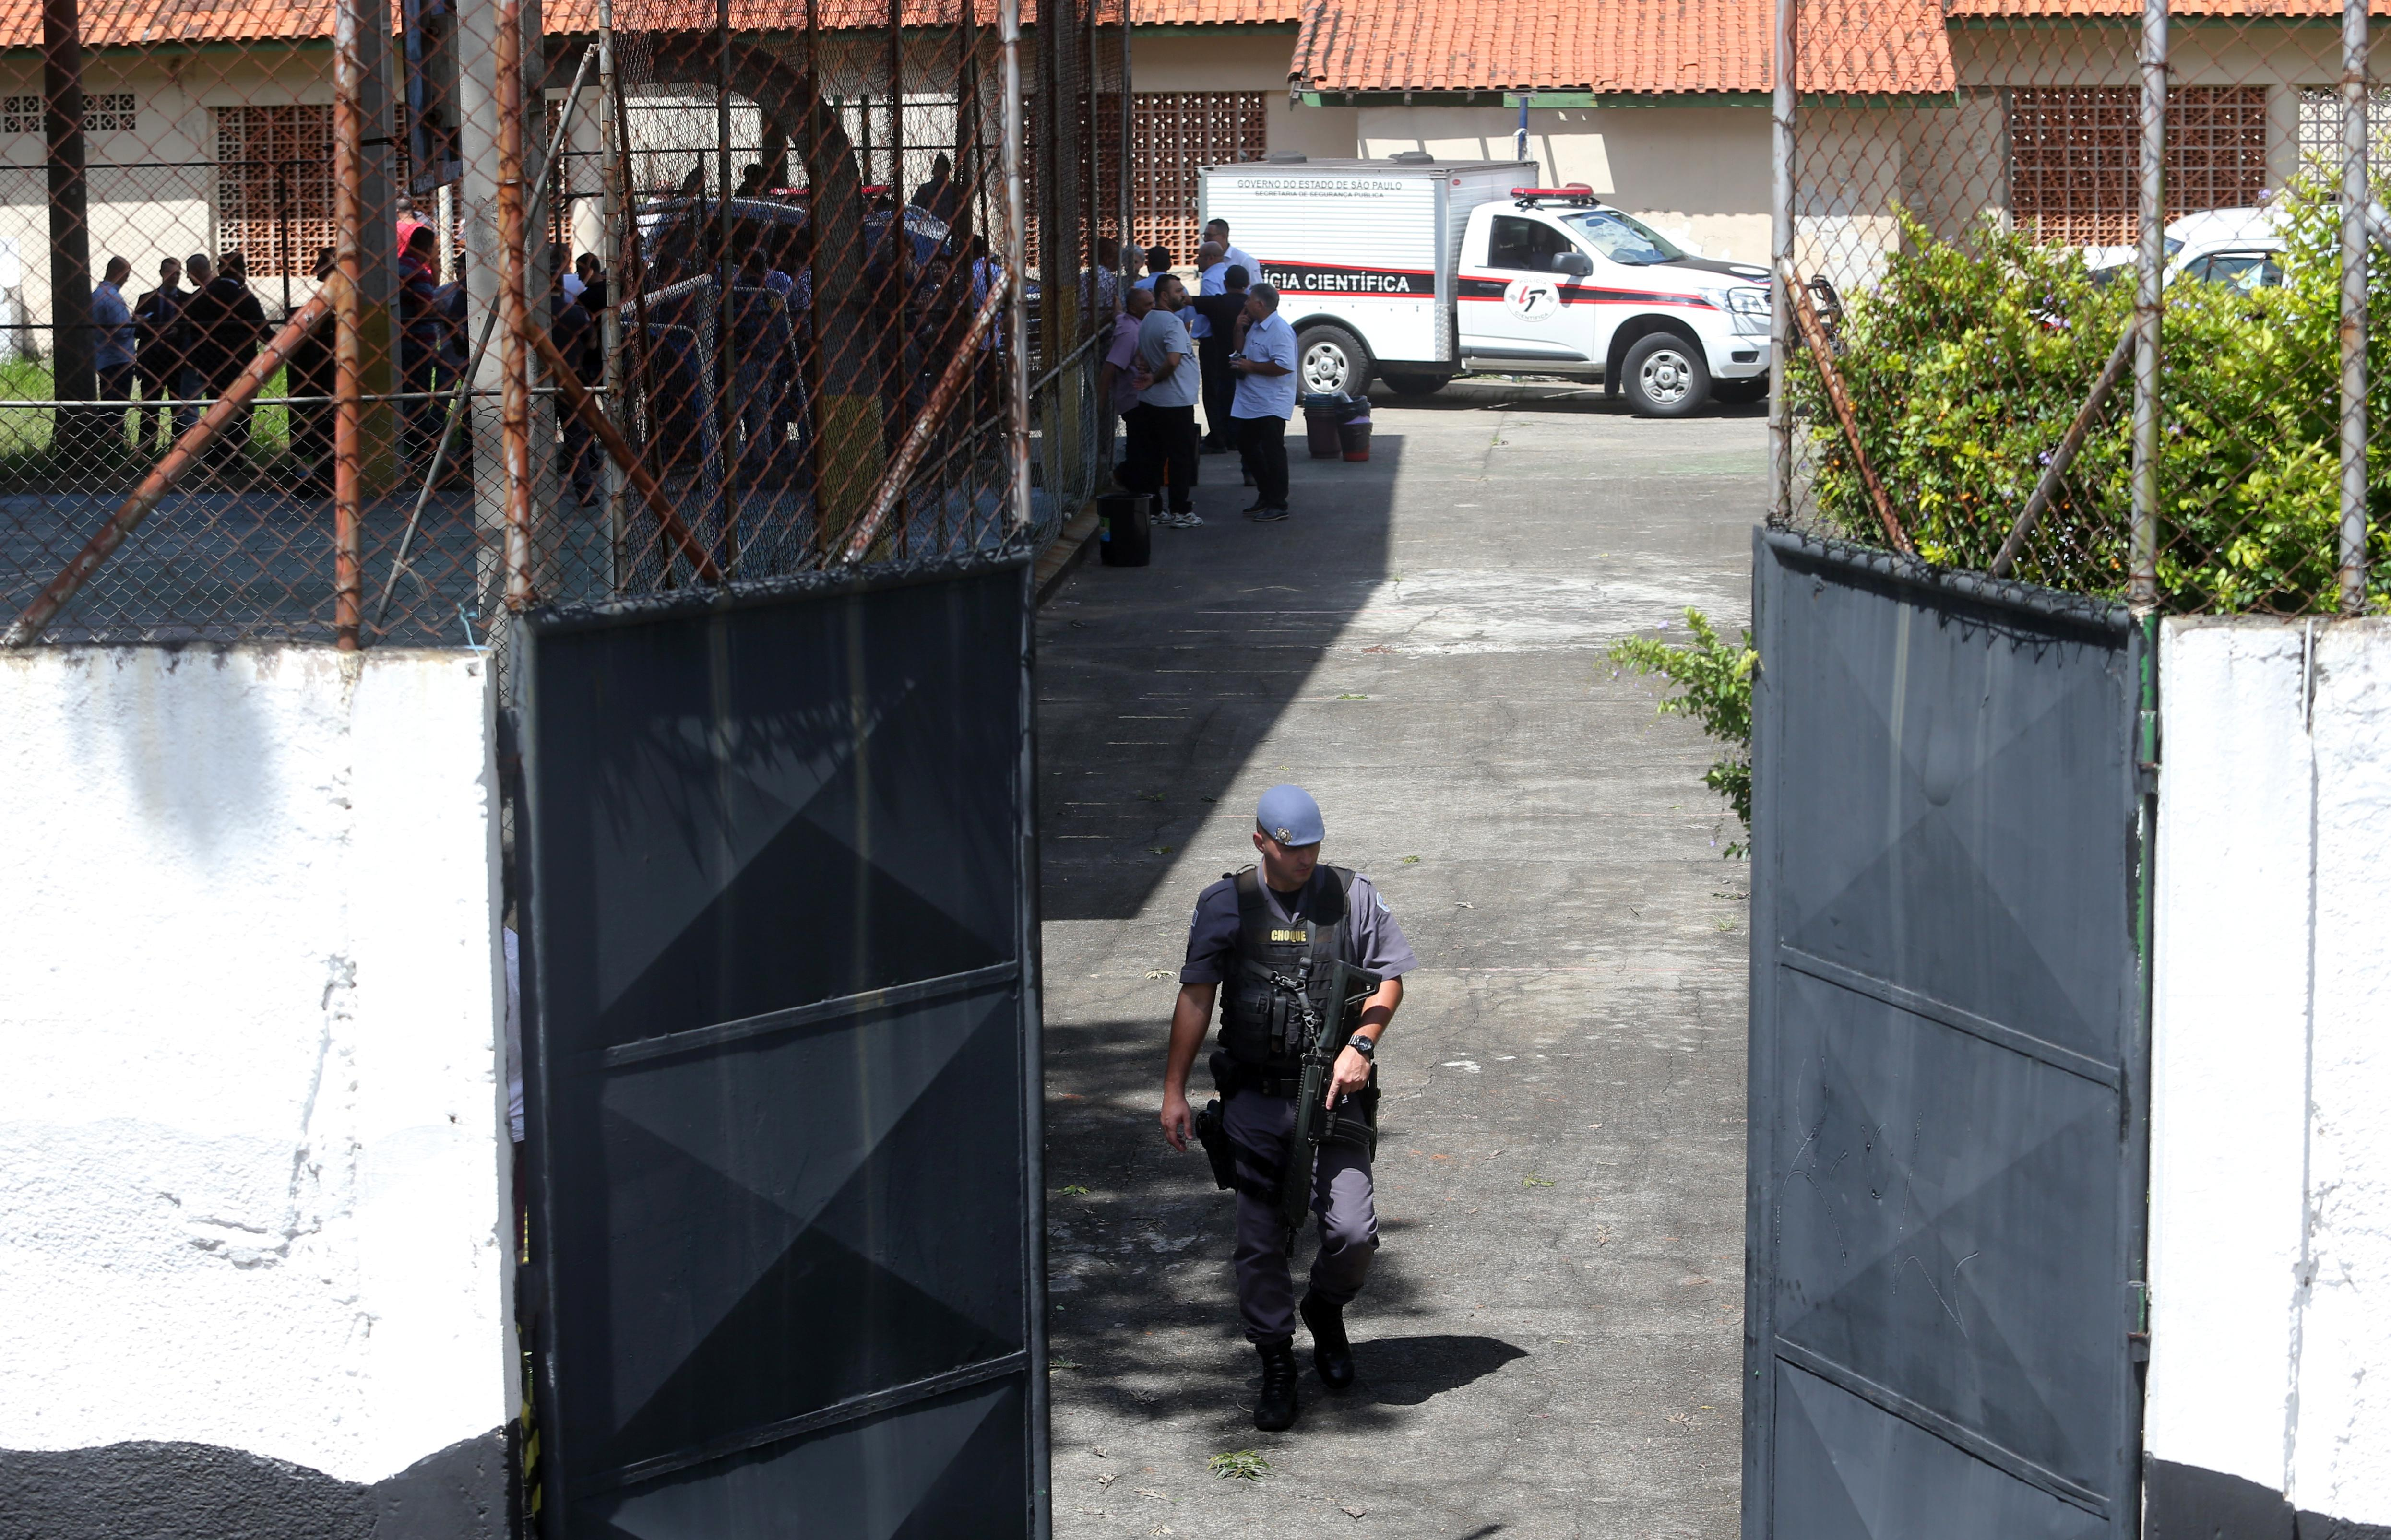 Victims killed, injured during school shooting in Brazil